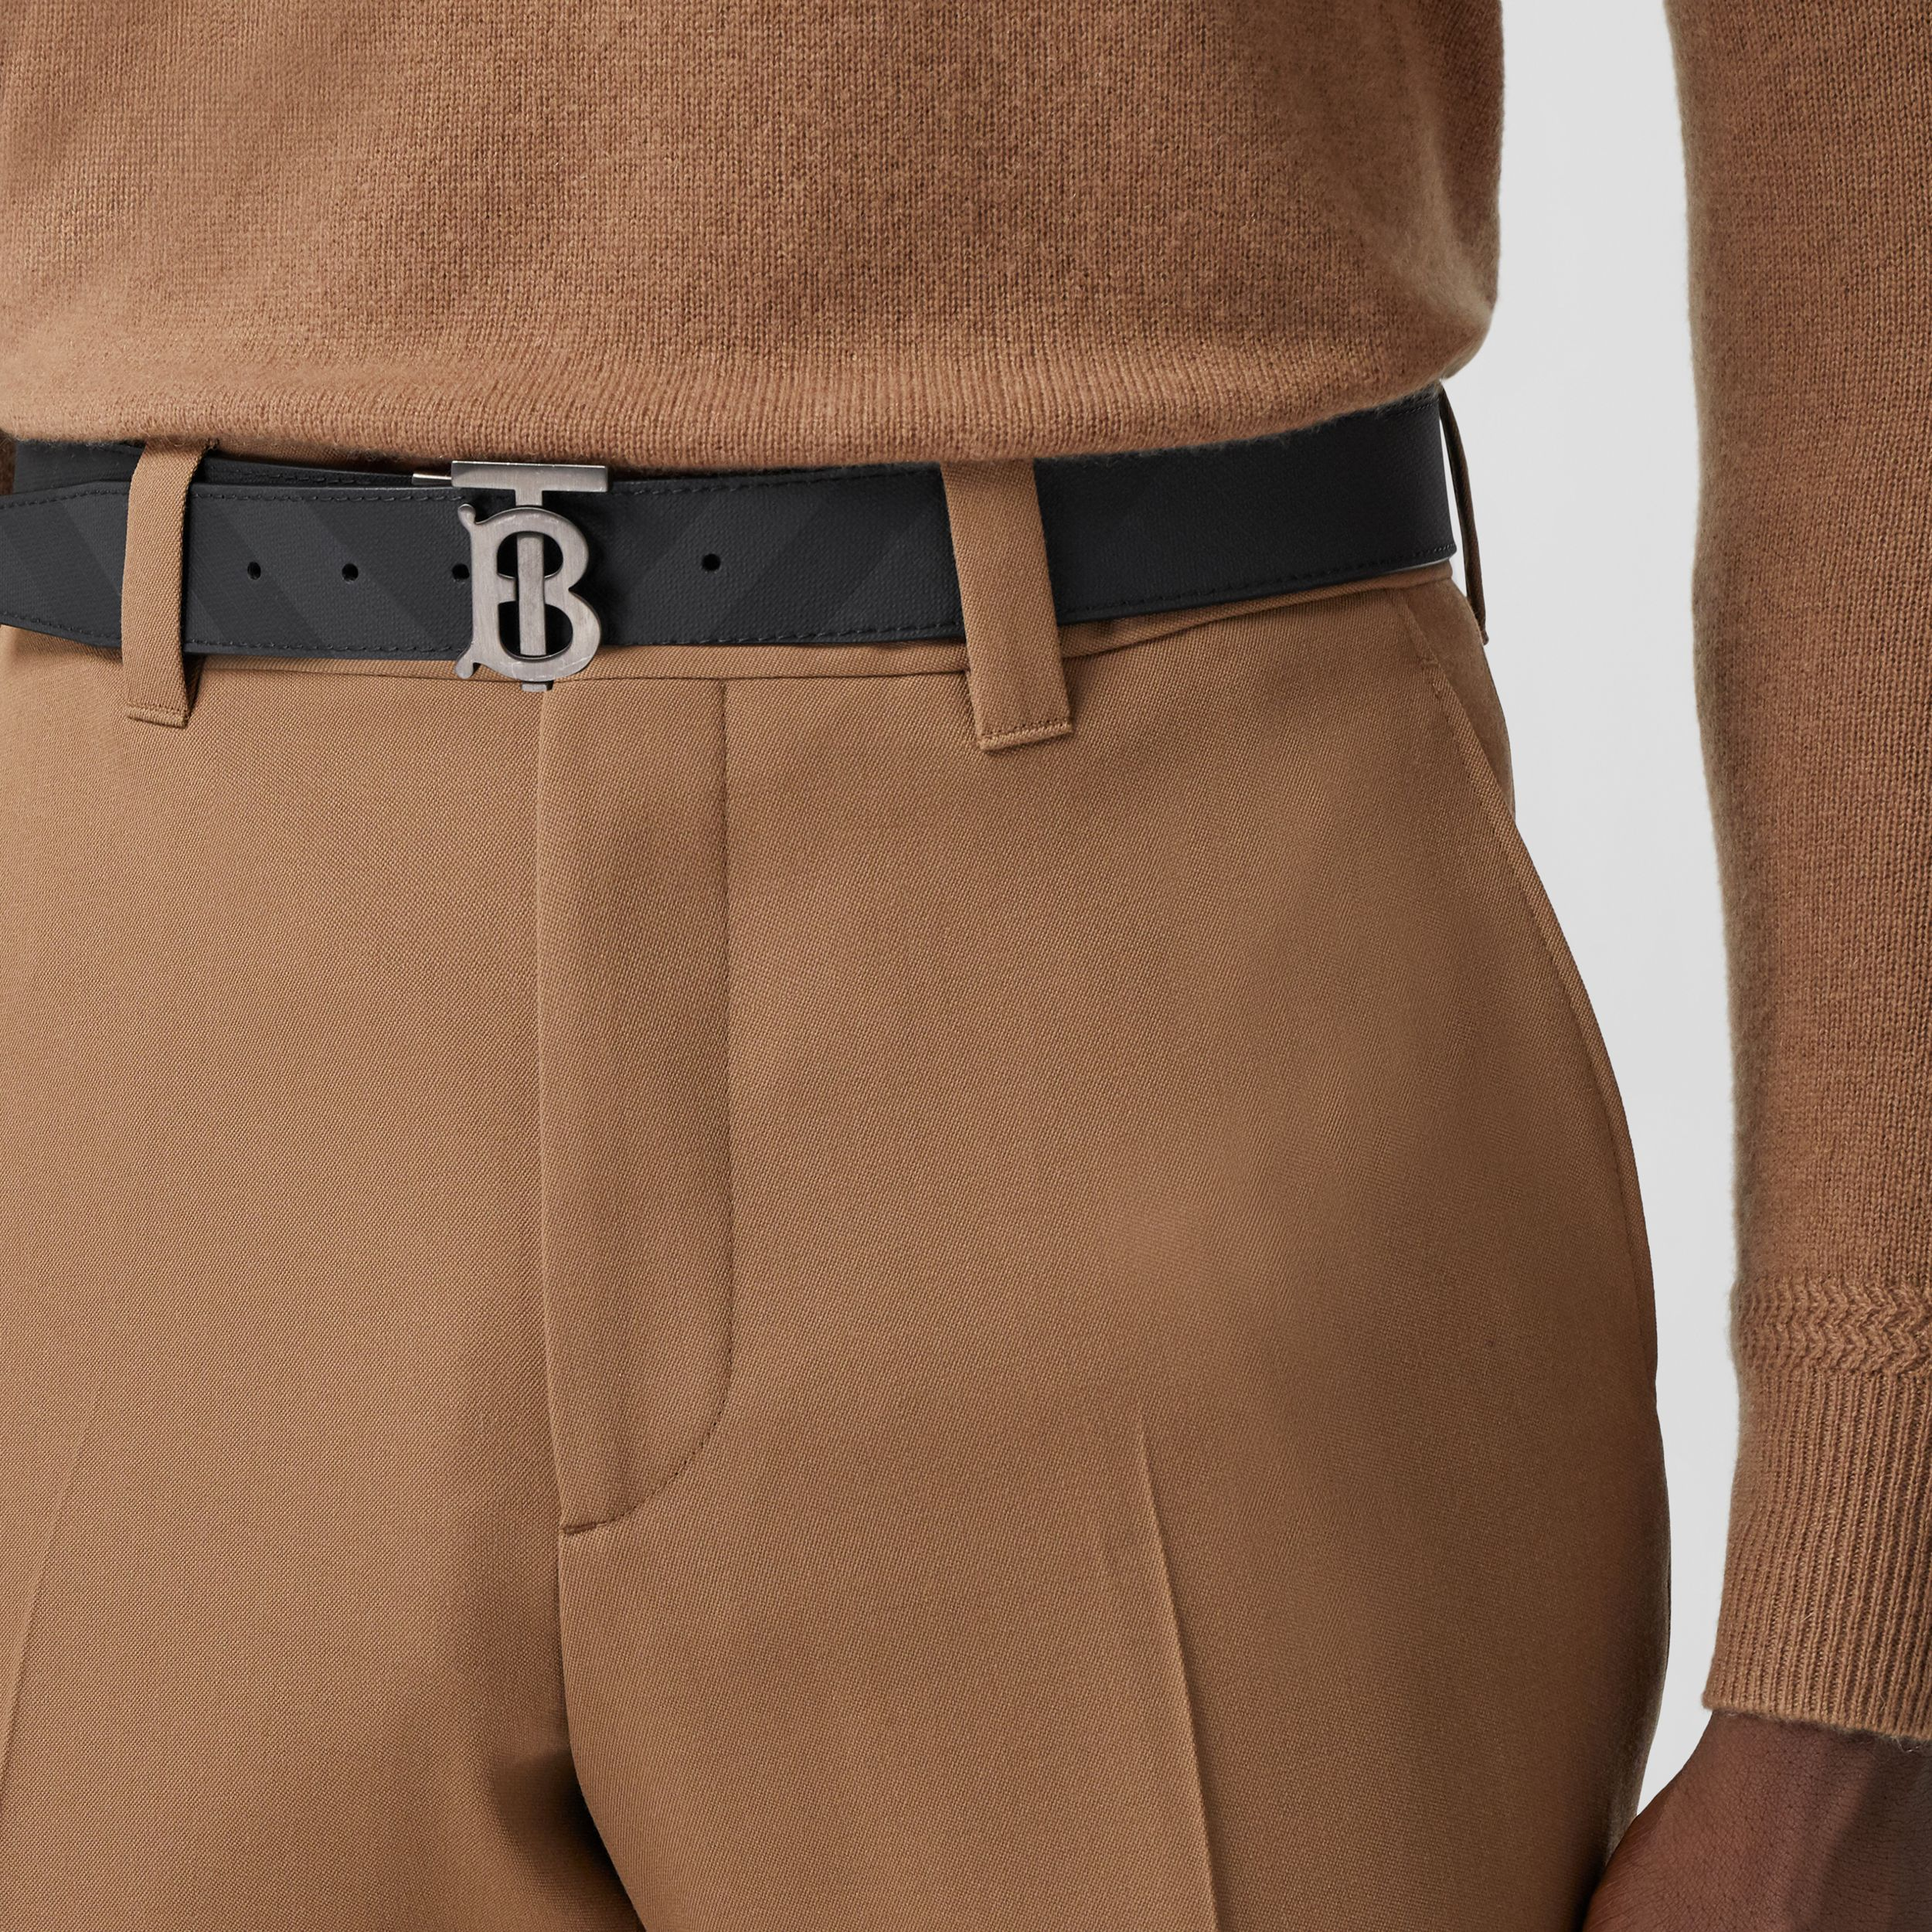 Reversible Monogram Motif London Check Belt in Dark Charcoal - Men | Burberry Australia - 3